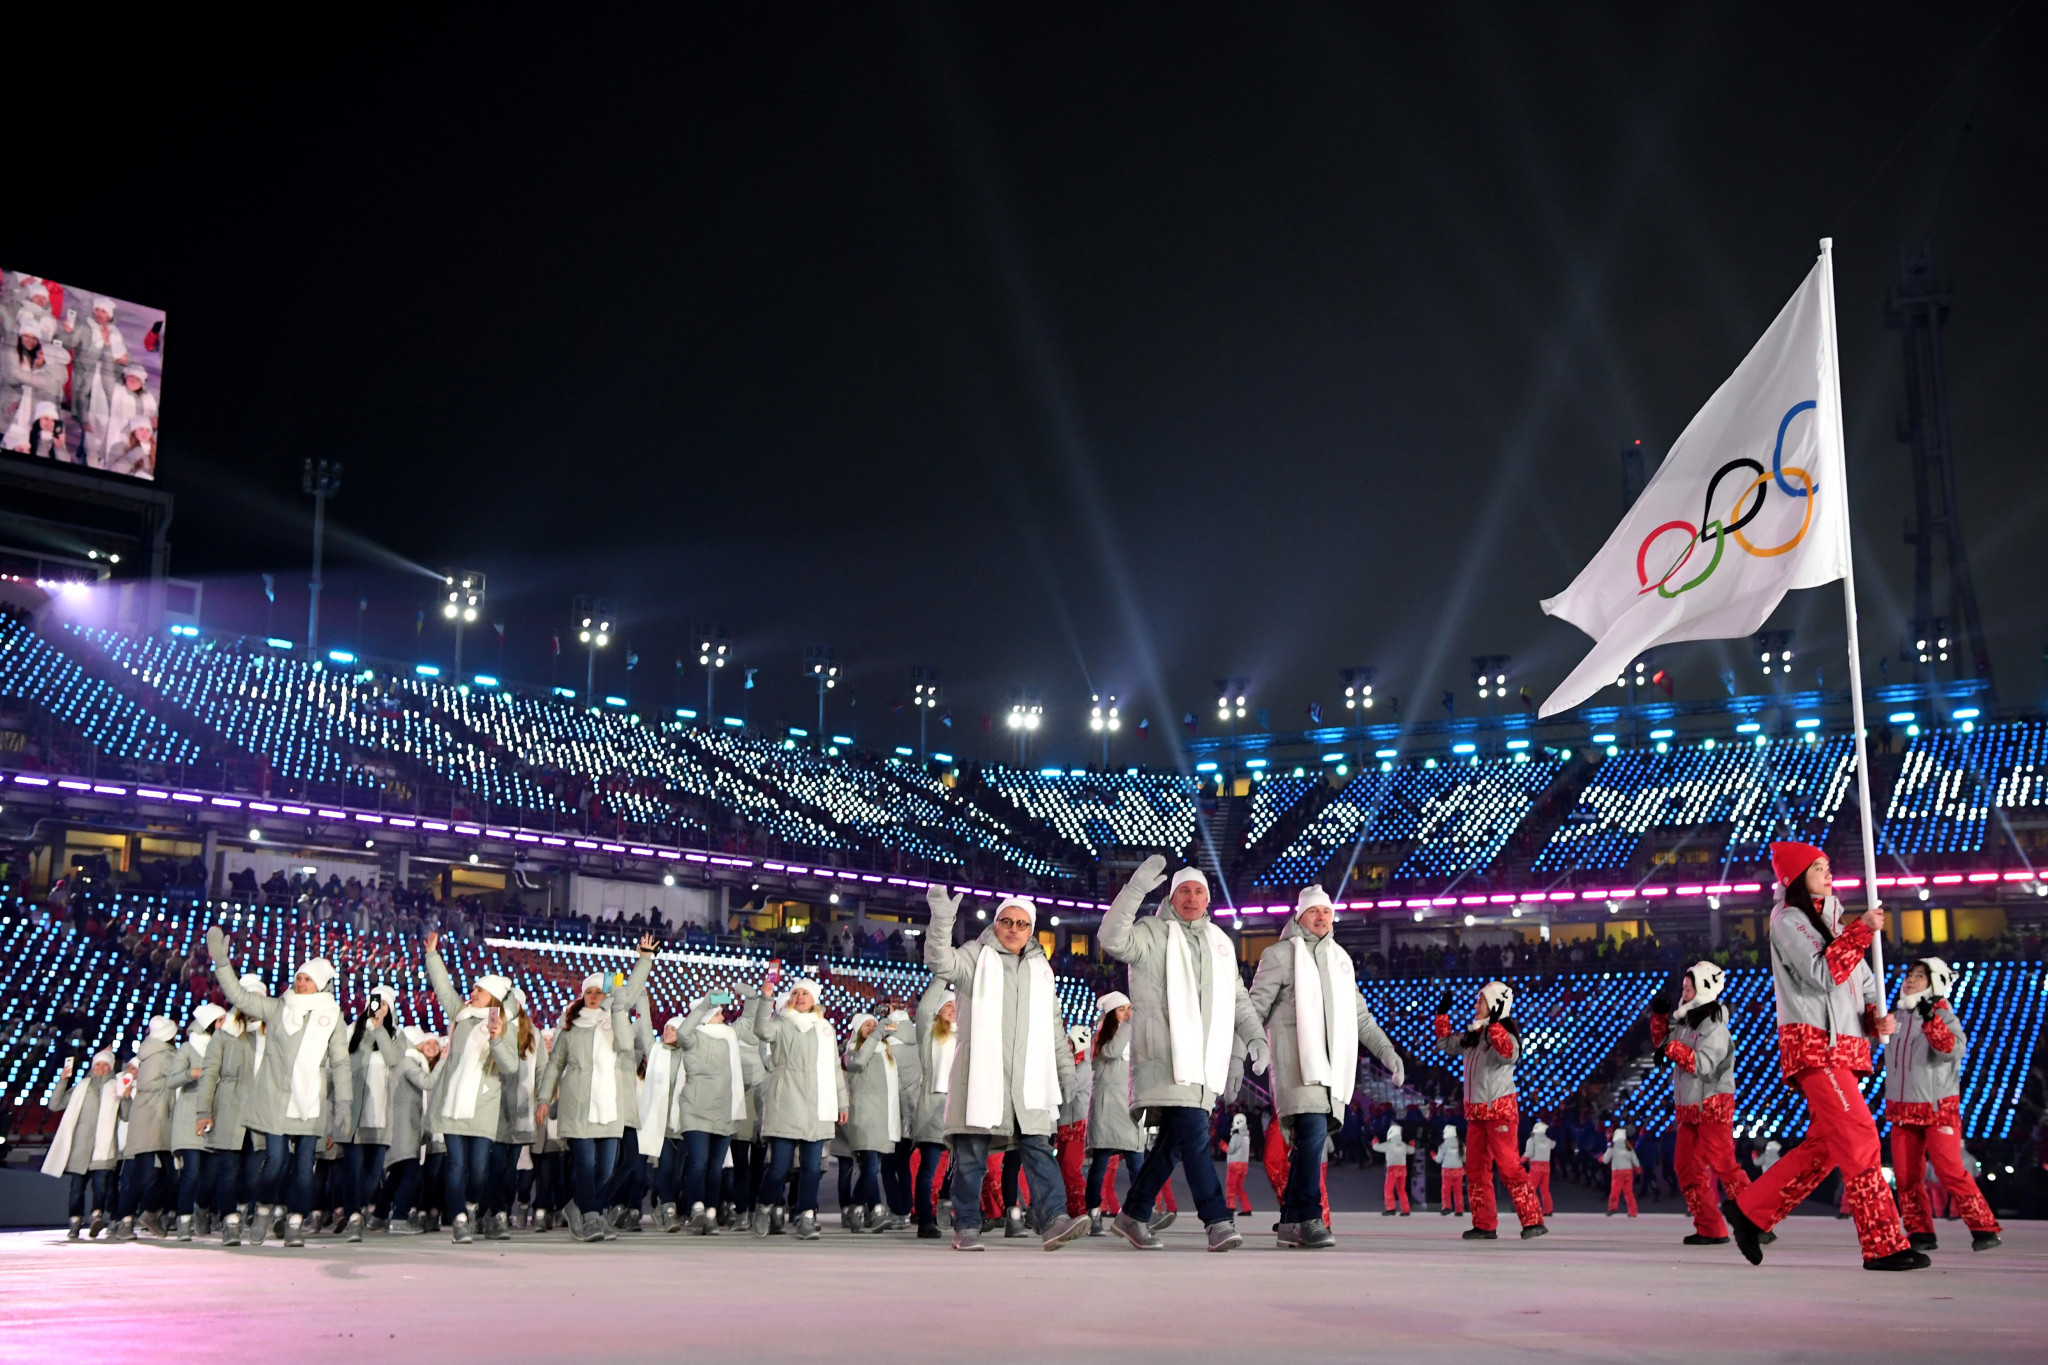 Russian athletes competed under the banner of the Olympic Athletes from Russia at Pyeongchang 2018 ©Getty Images